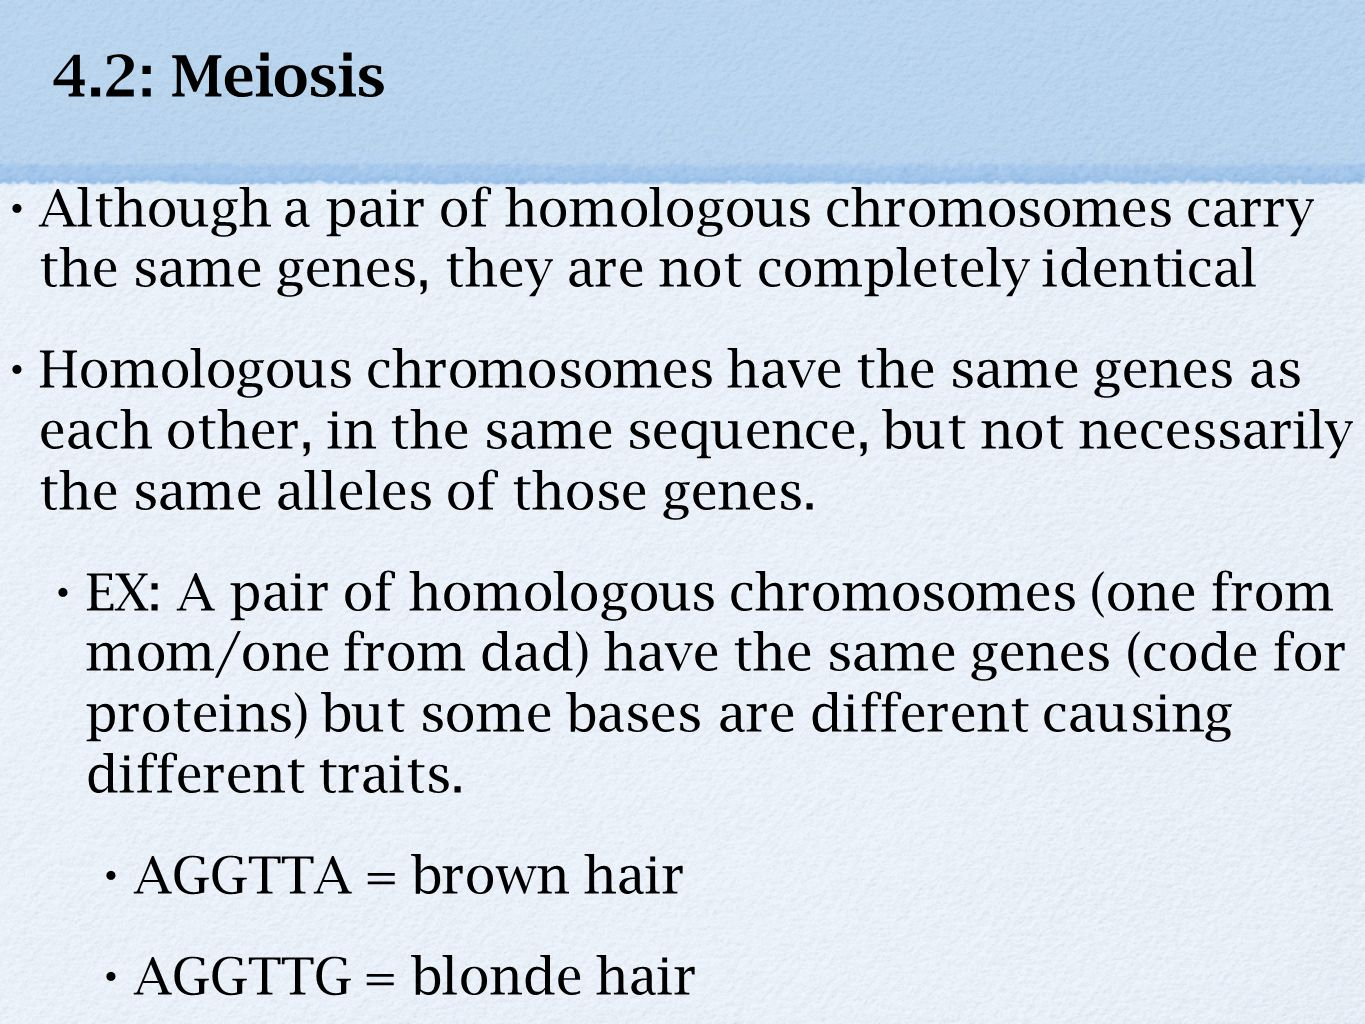 4.2: Meiosis Although a pair of homologous chromosomes carry the same genes, they are not completely identical.